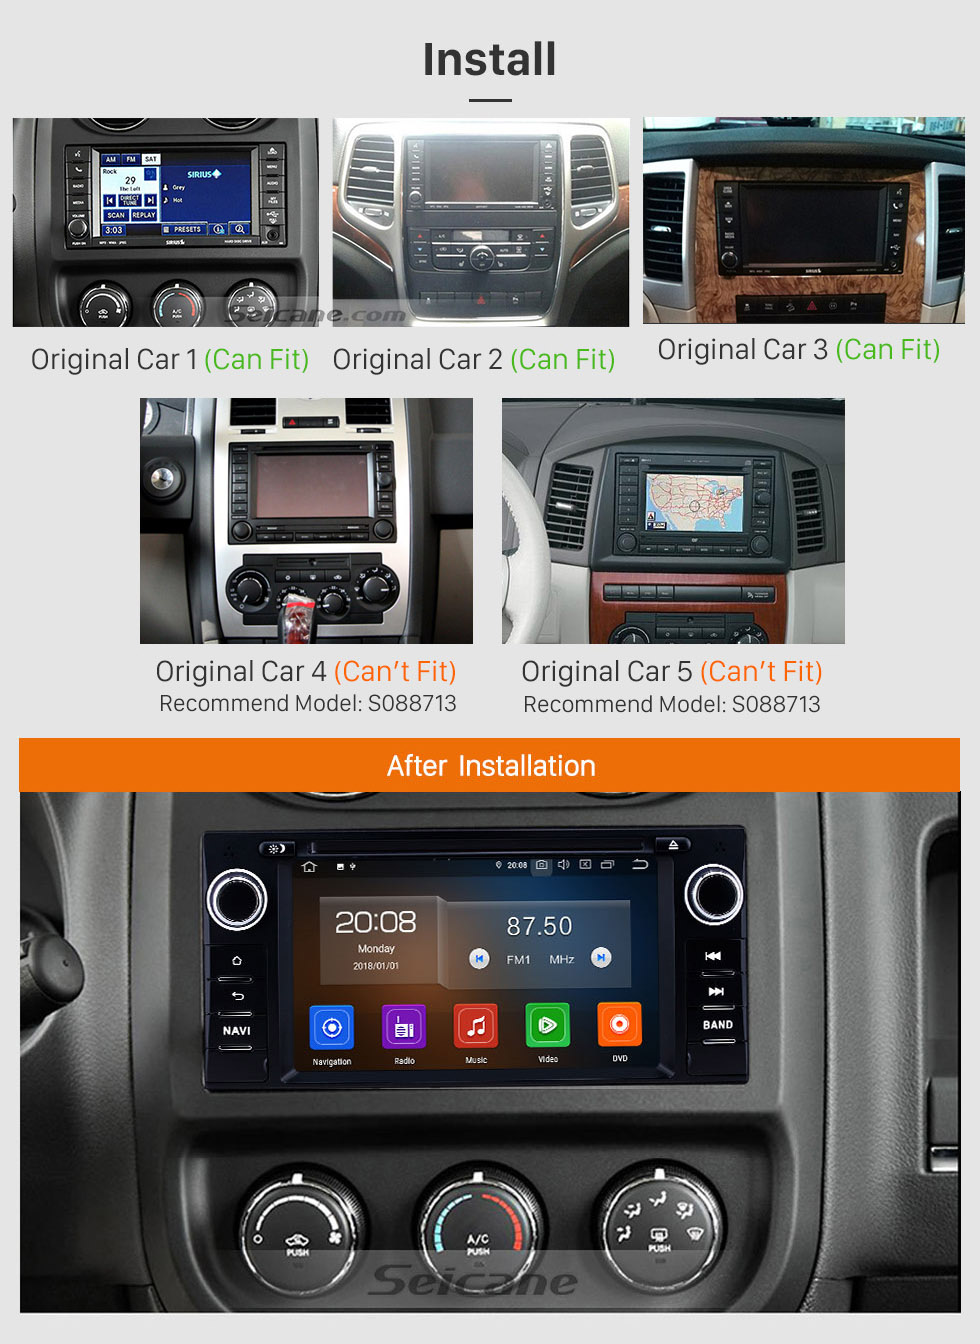 Seicane 6.2 inch 2005-2011 Jeep Grand Cherokee/Wrangler/Compass/Commander Android 10.0 GPS Navigation Radio Bluetooth Touchscreen Carplay support Backup camera